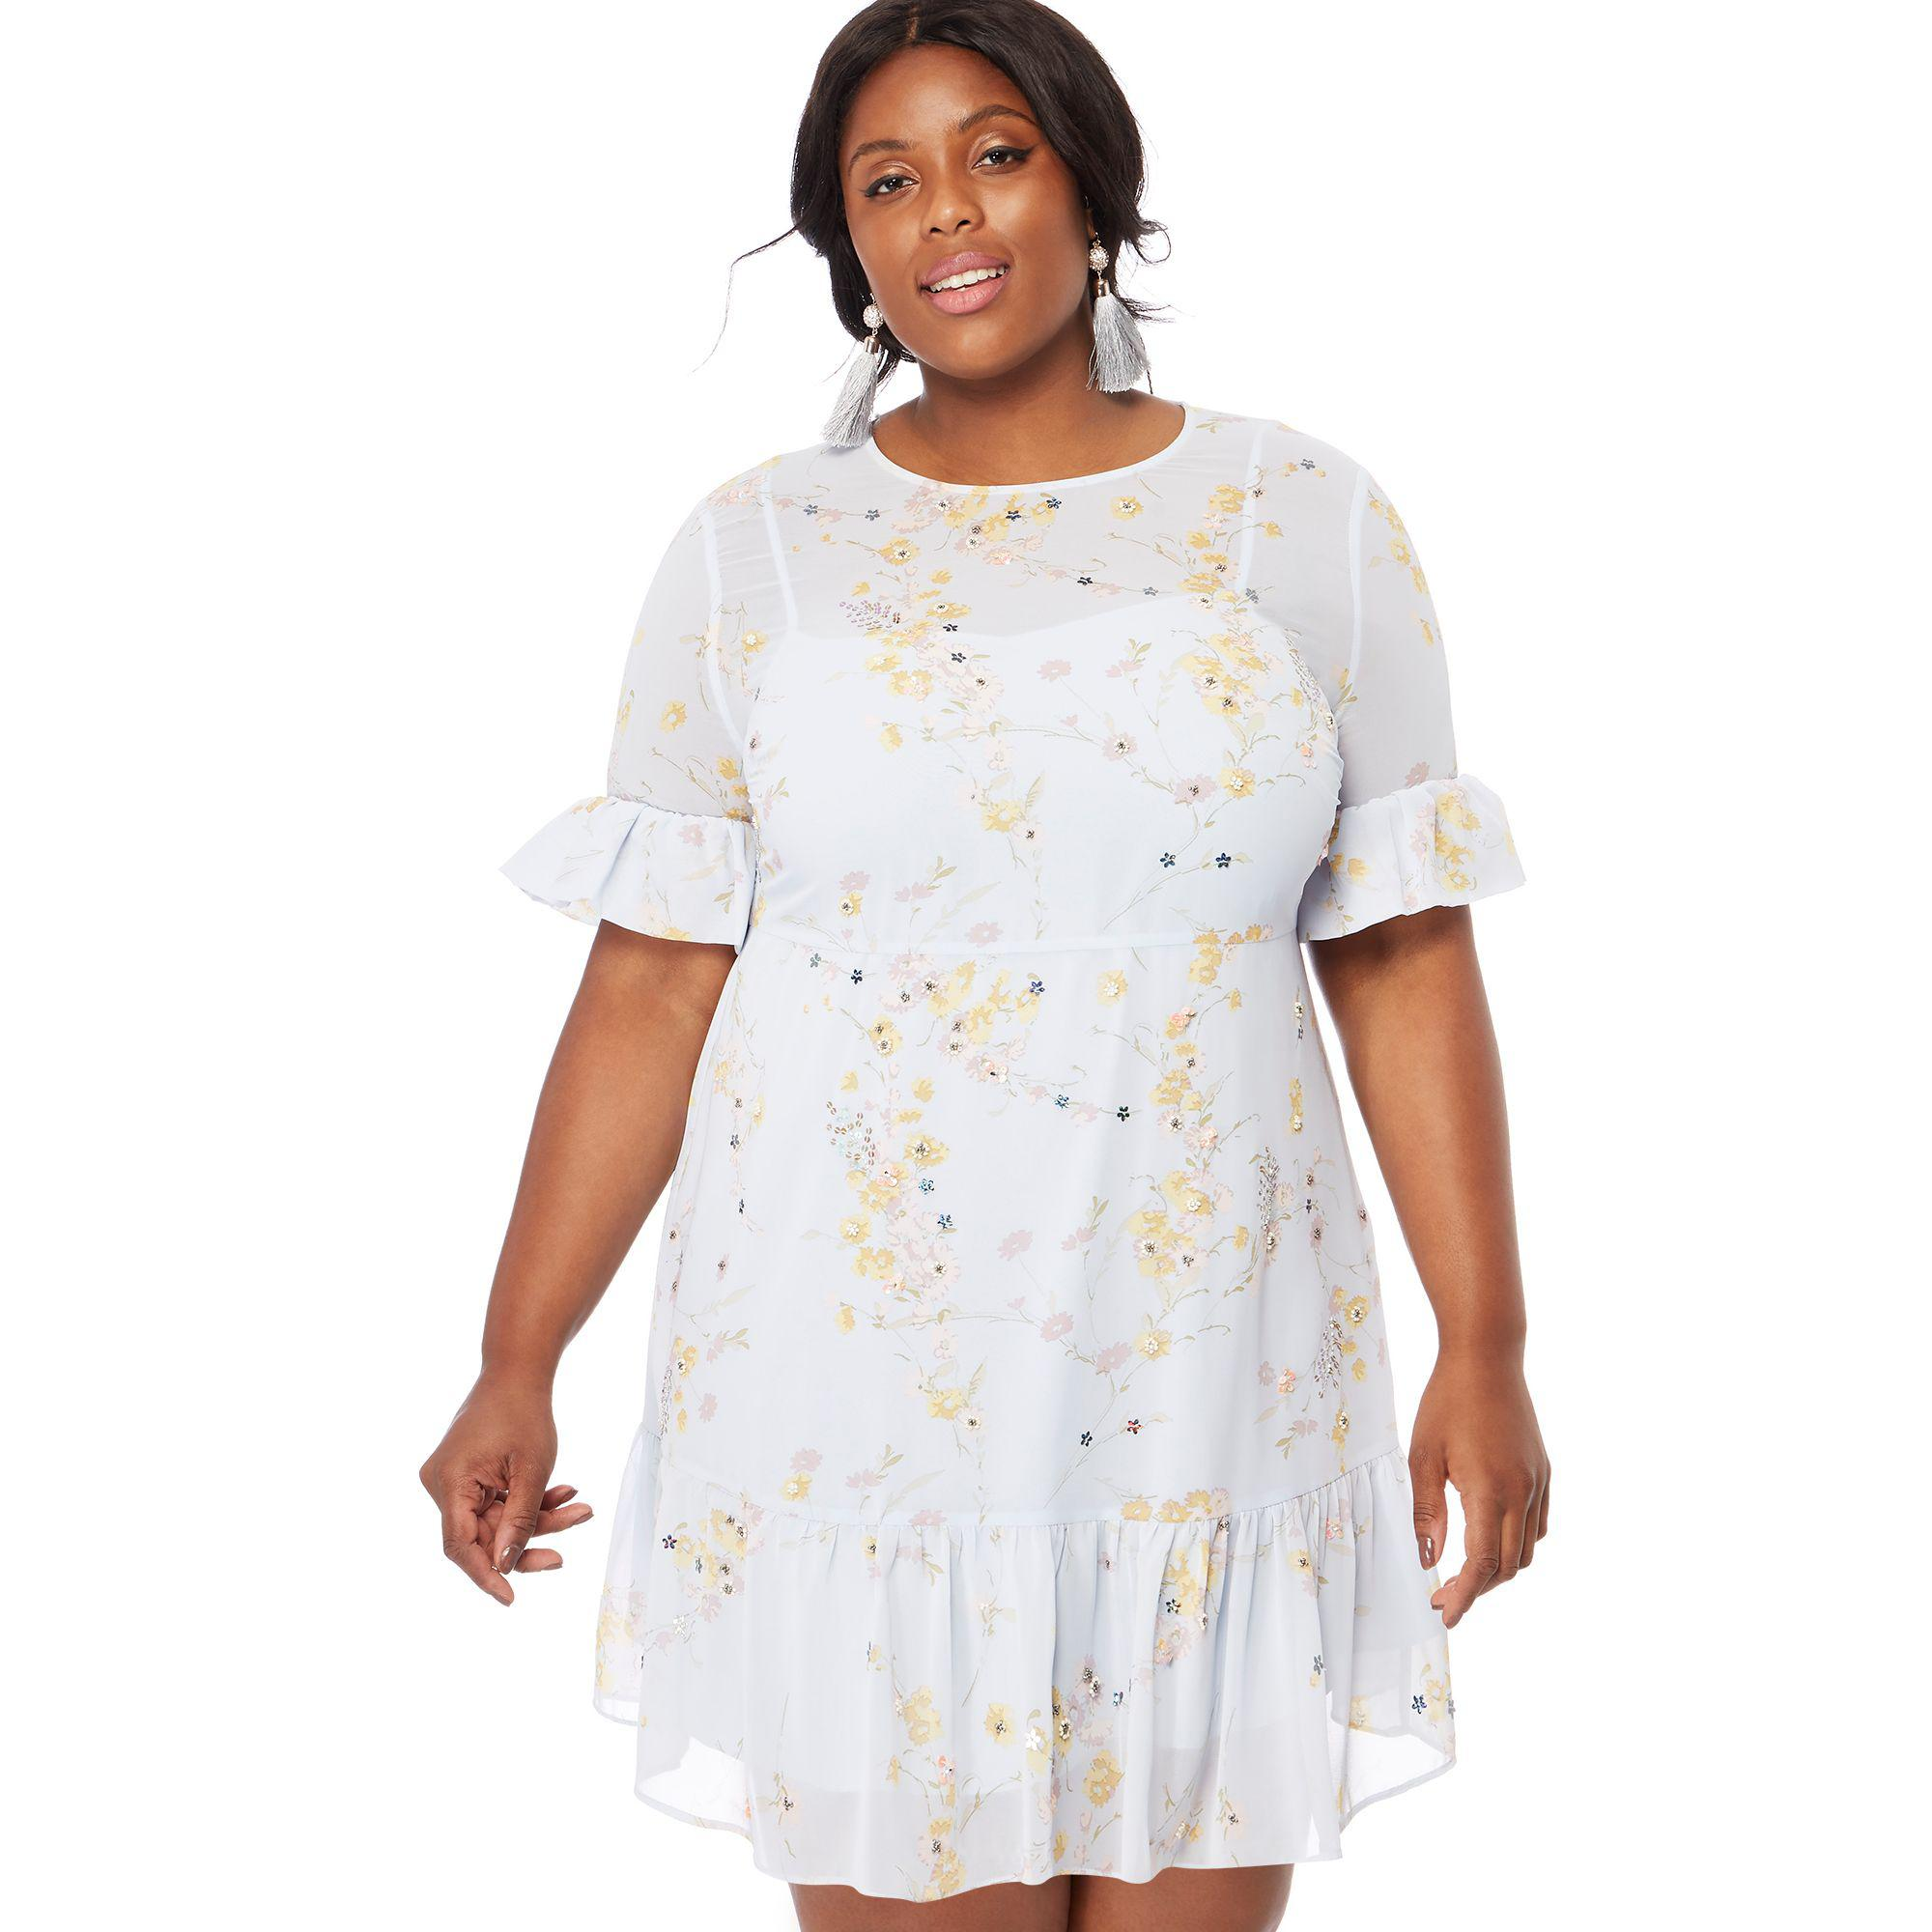 c13ee2a10ad5 White Dress With Sleeves Knee Length Plus Size - PostParc